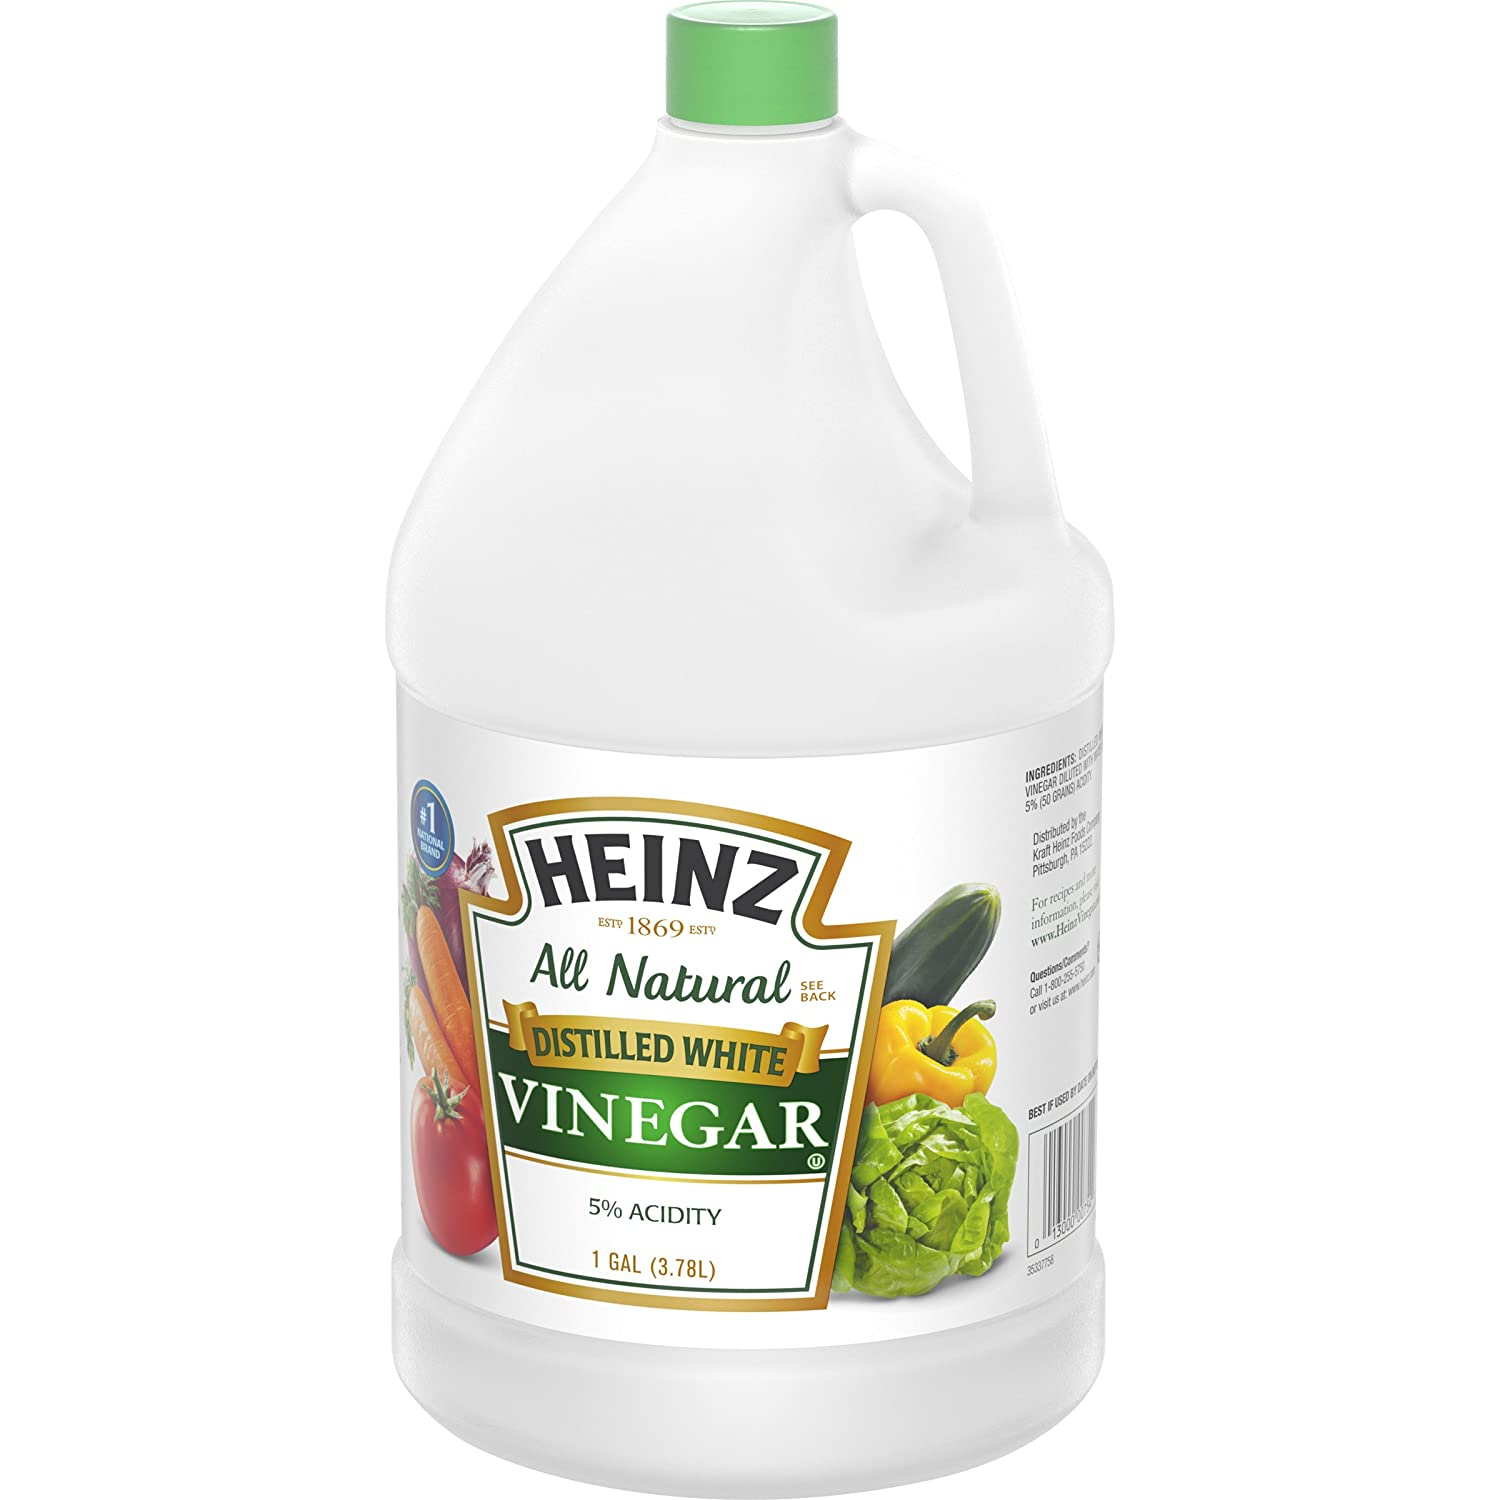 From what do ordinary vinegar